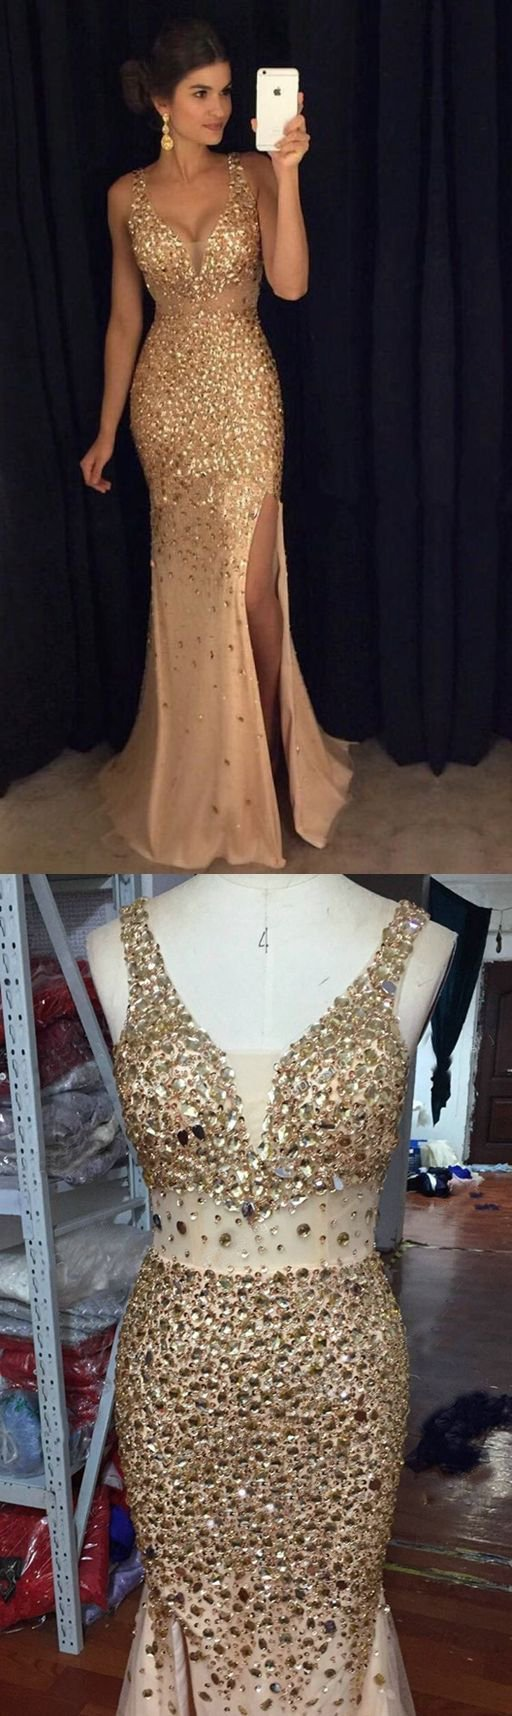 1acfe5ebdb Gold Mermaid Prom Dress Cheap Long Tulle African Prom Dress  ER301 -  OrtDress